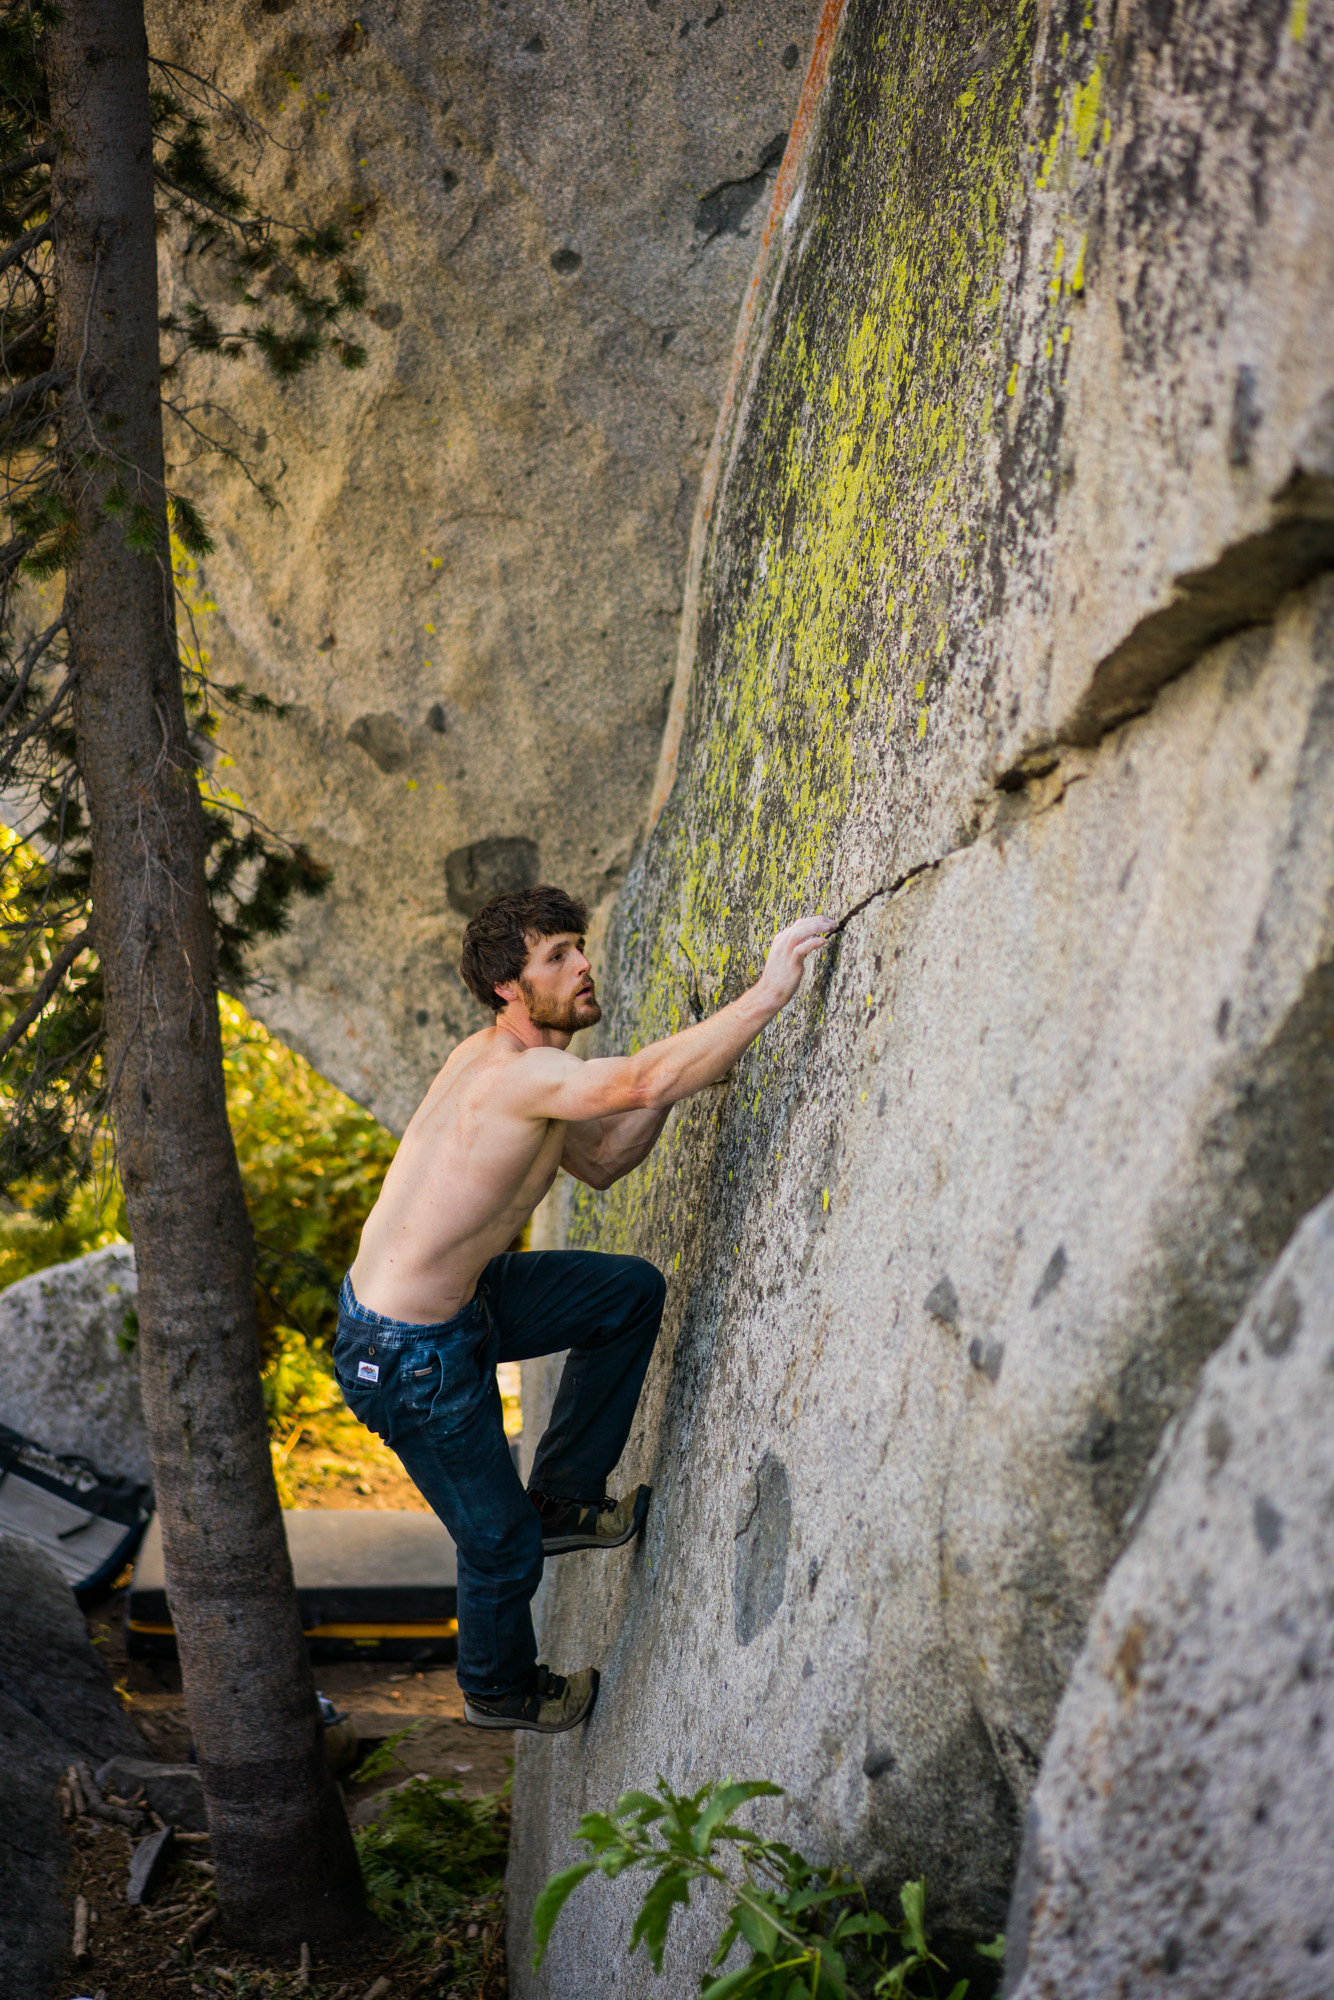 How He-Man warms up for projecting 8C - finger cracks in tennies